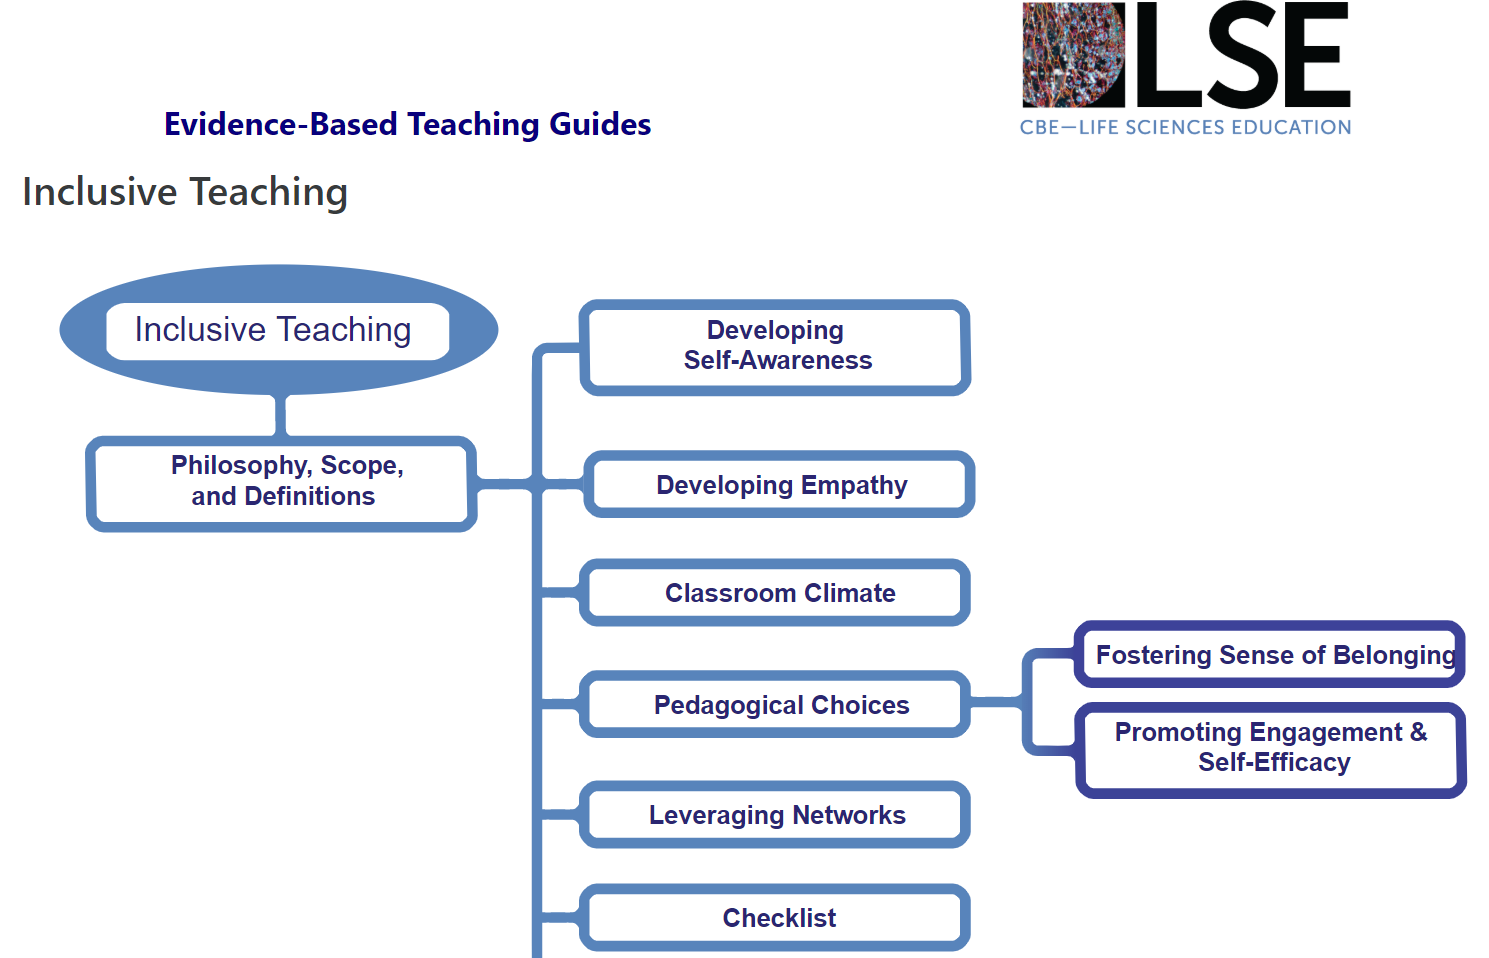 Map of CBE Inclusive Teaching Guide